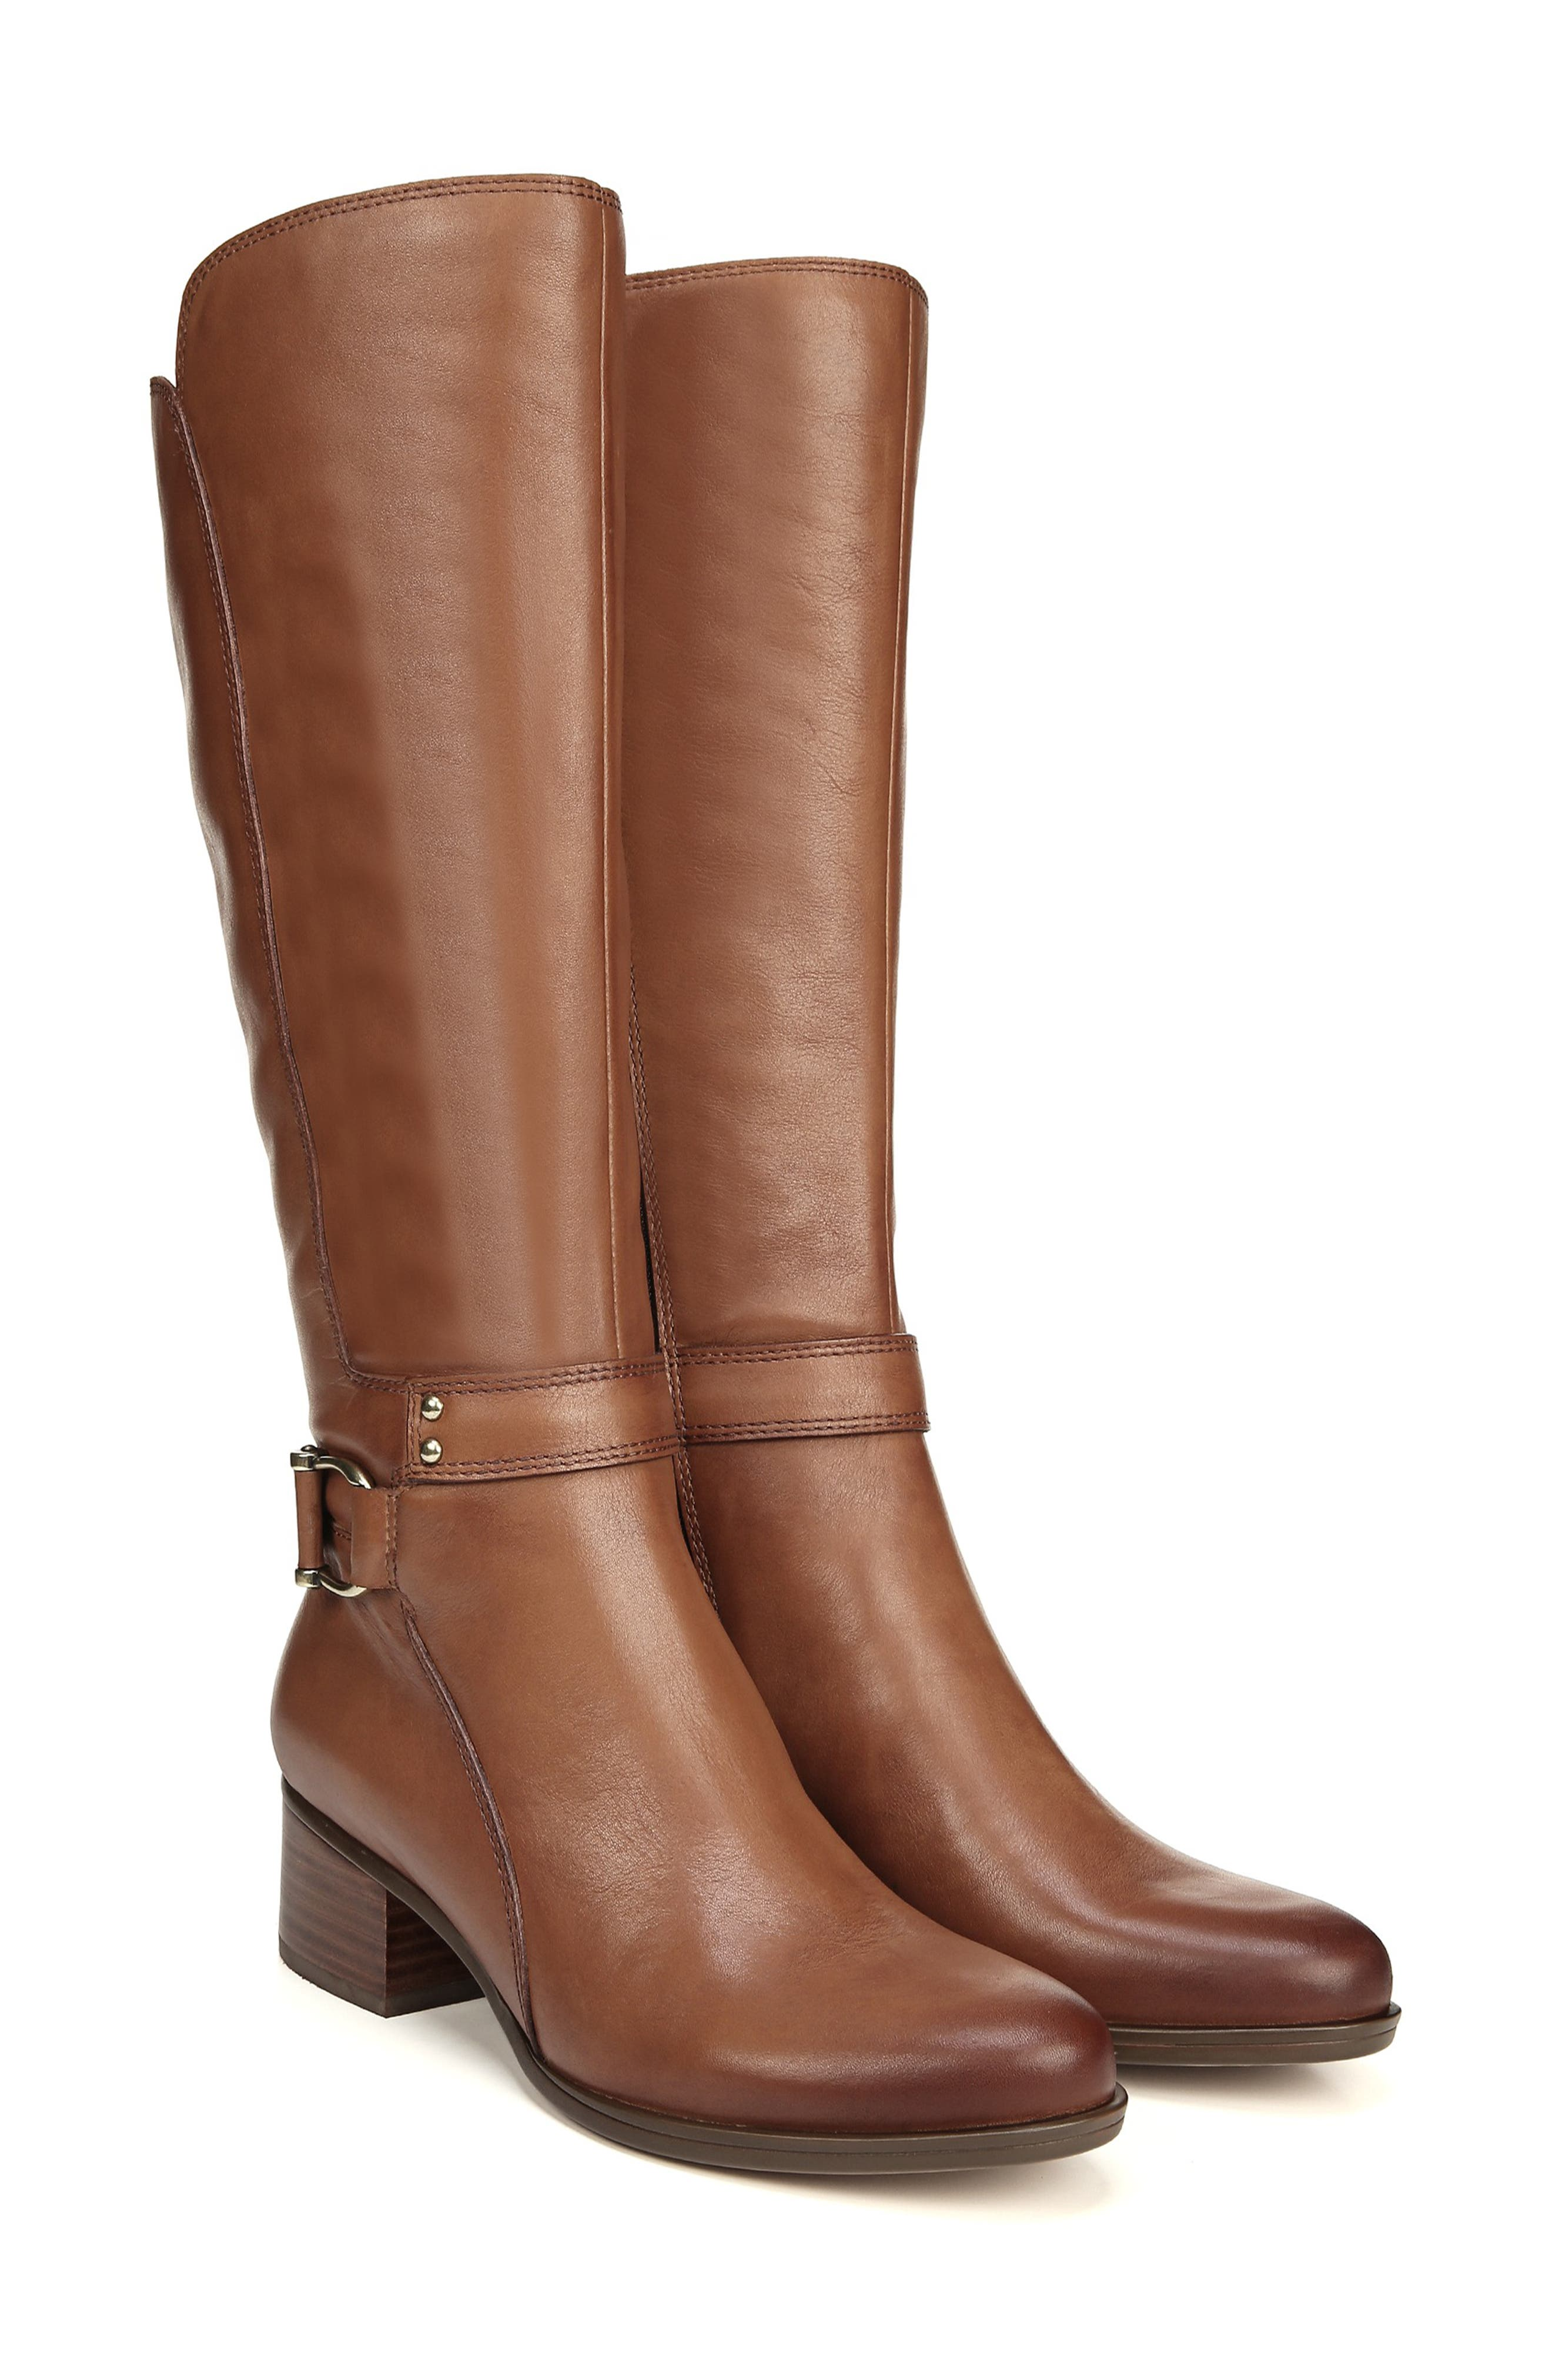 NATURALIZER, Dane Knee High Riding Boot, Alternate thumbnail 9, color, MAPLE LEATHER